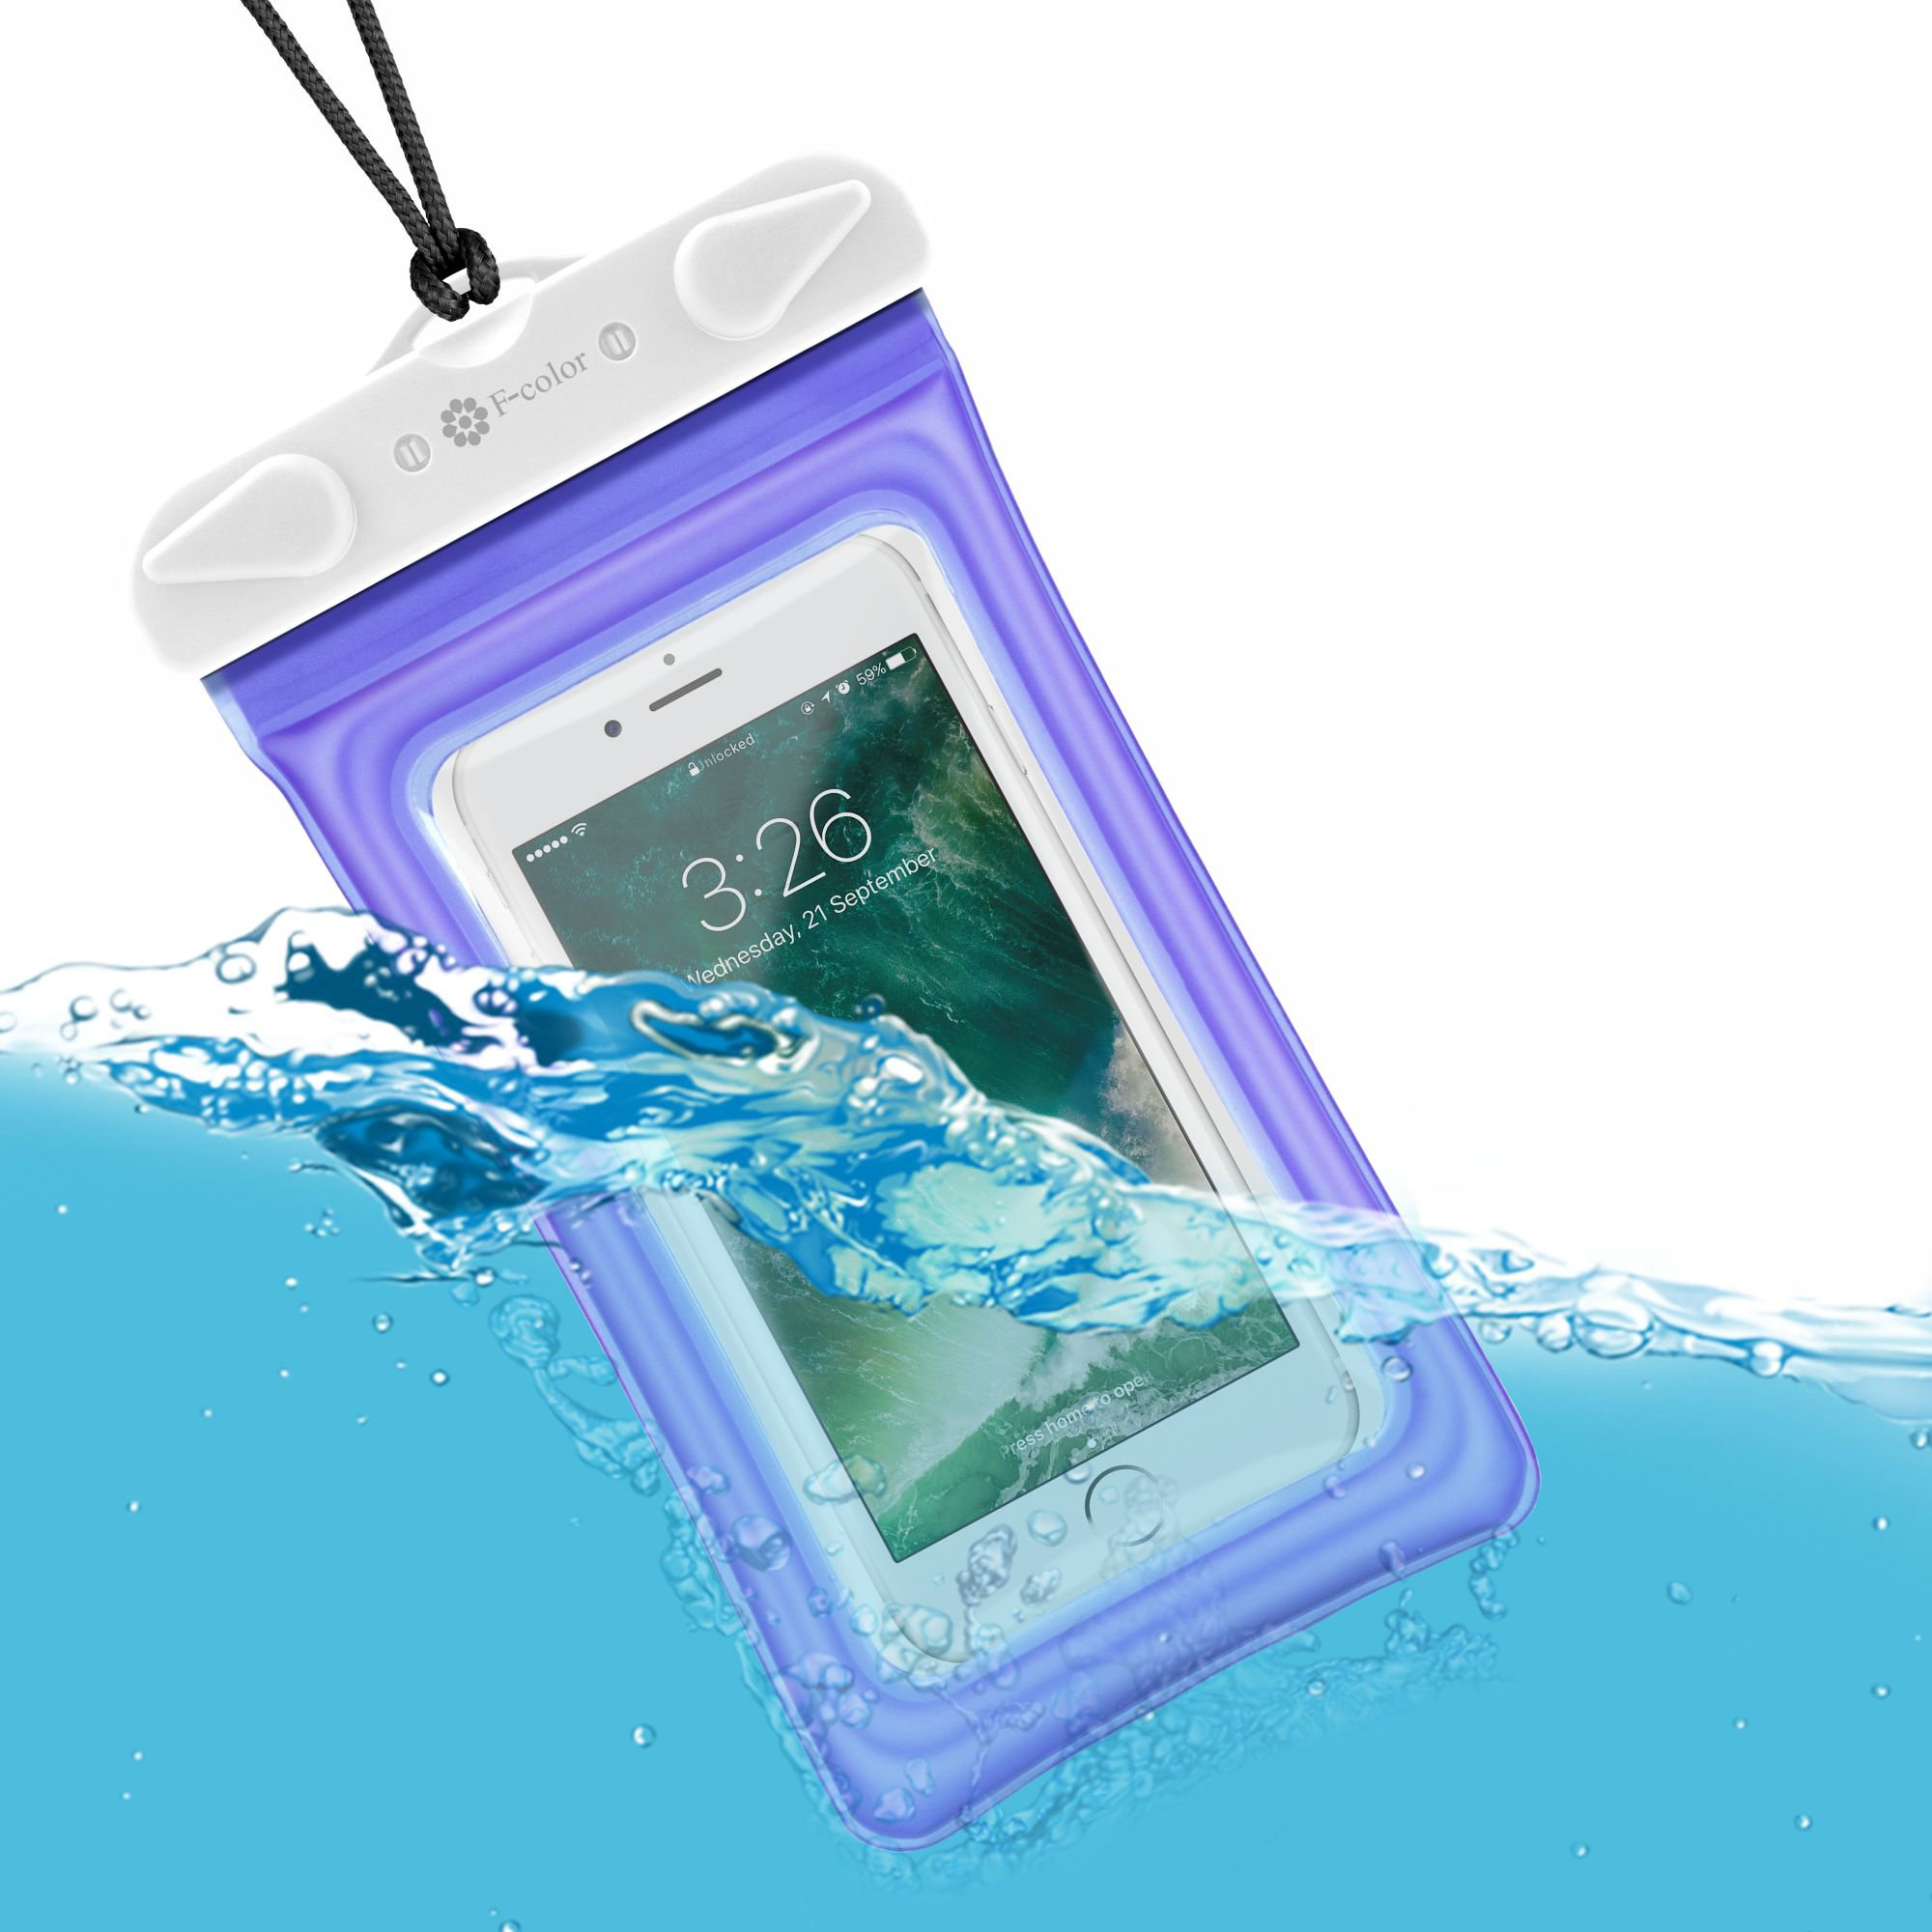 Waterproof Phone Pouch, 4 Pack F-color Clear Floating Waterproof Phone Case with Armband Beach Bag for Boating, Skiing, Water Sports, Compatible with iPhone X 8 7 6S Plus SE 5, Google Pixel and More by F-color (Image #5)